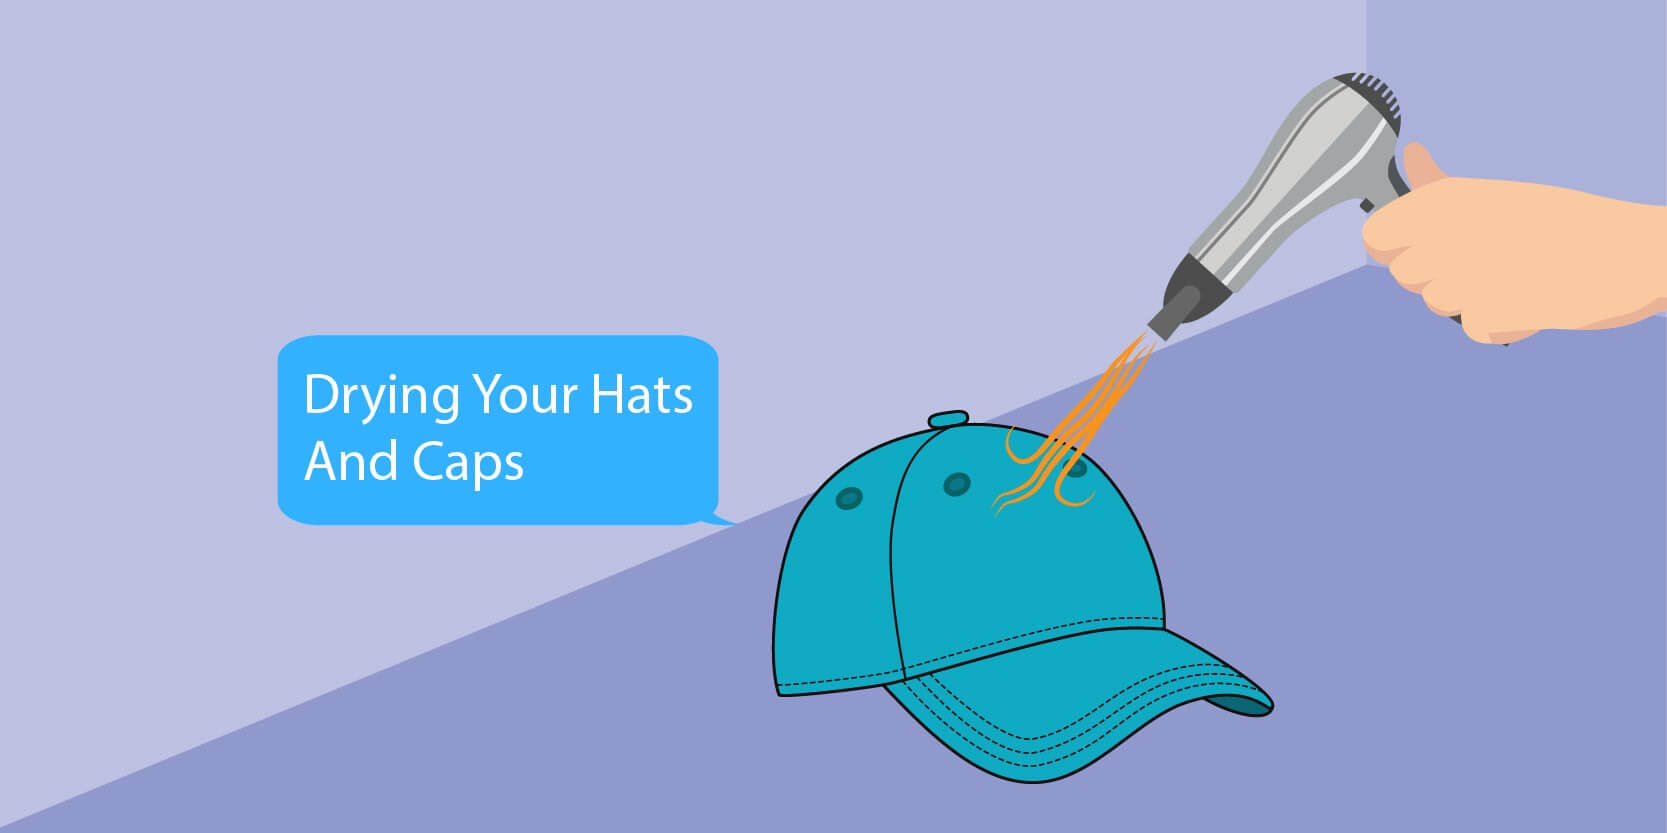 Only Air-Dry Hats and Caps